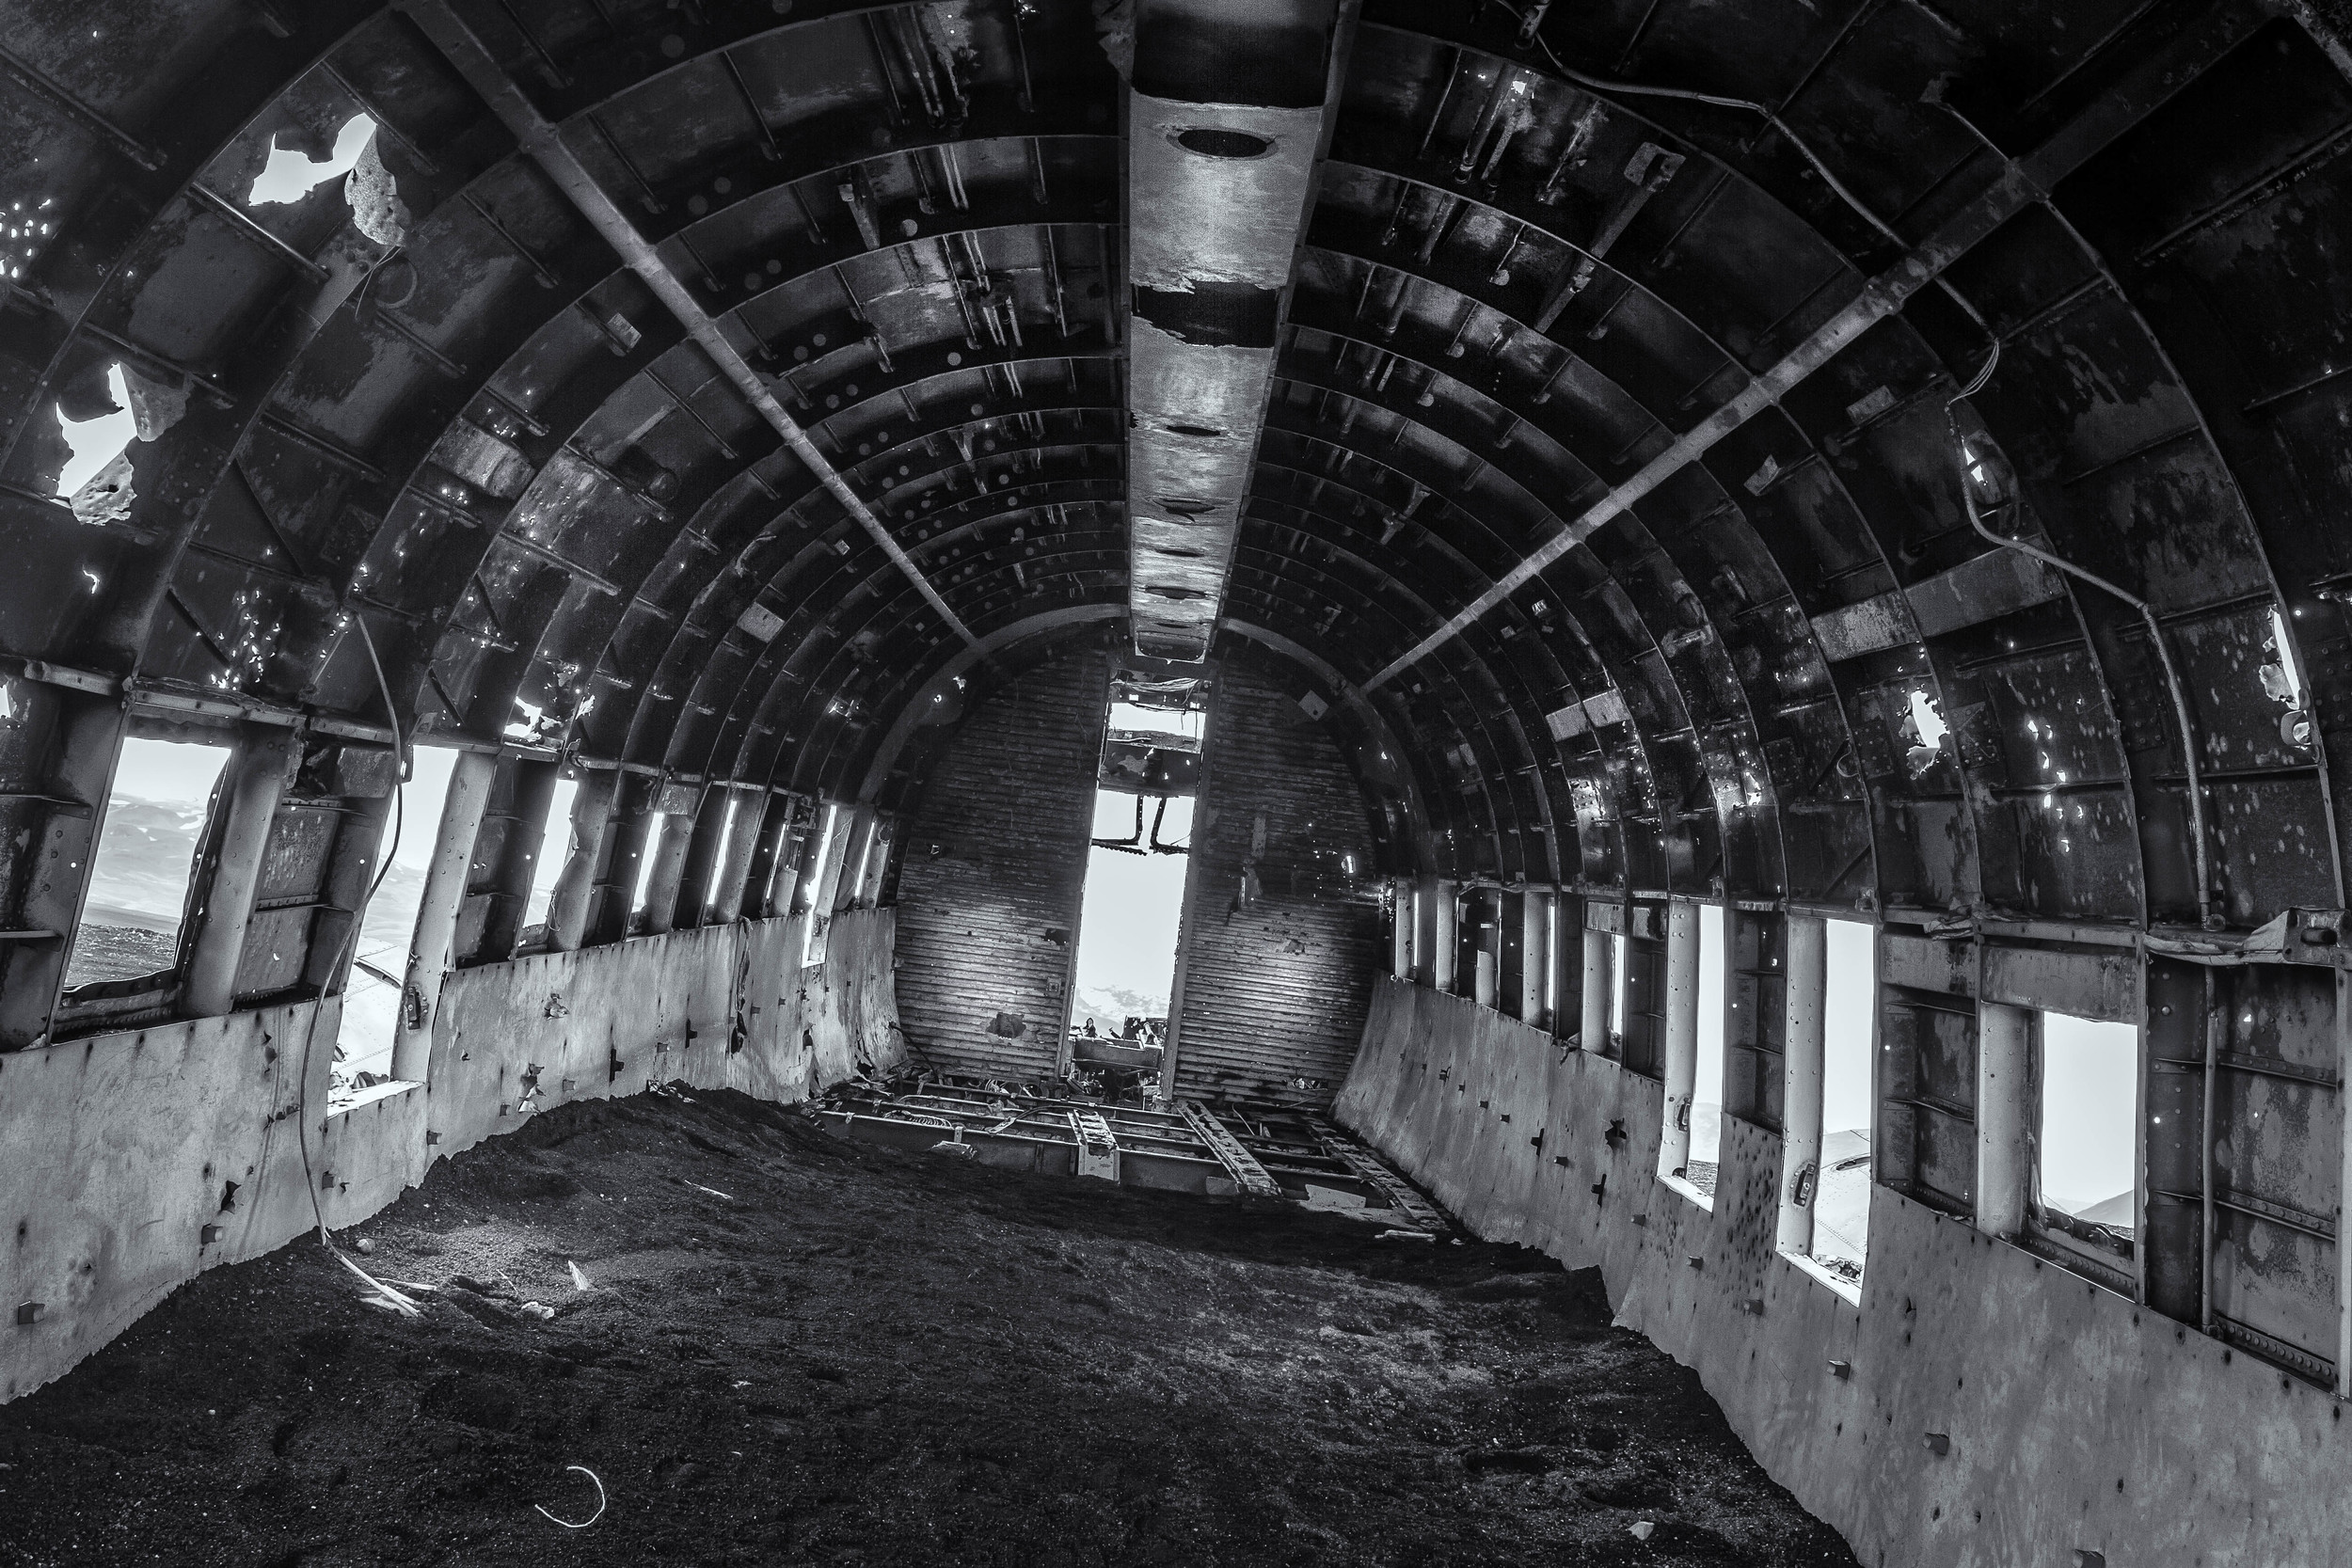 The interior is still accessible giving access to the cockpit - though not much remains.